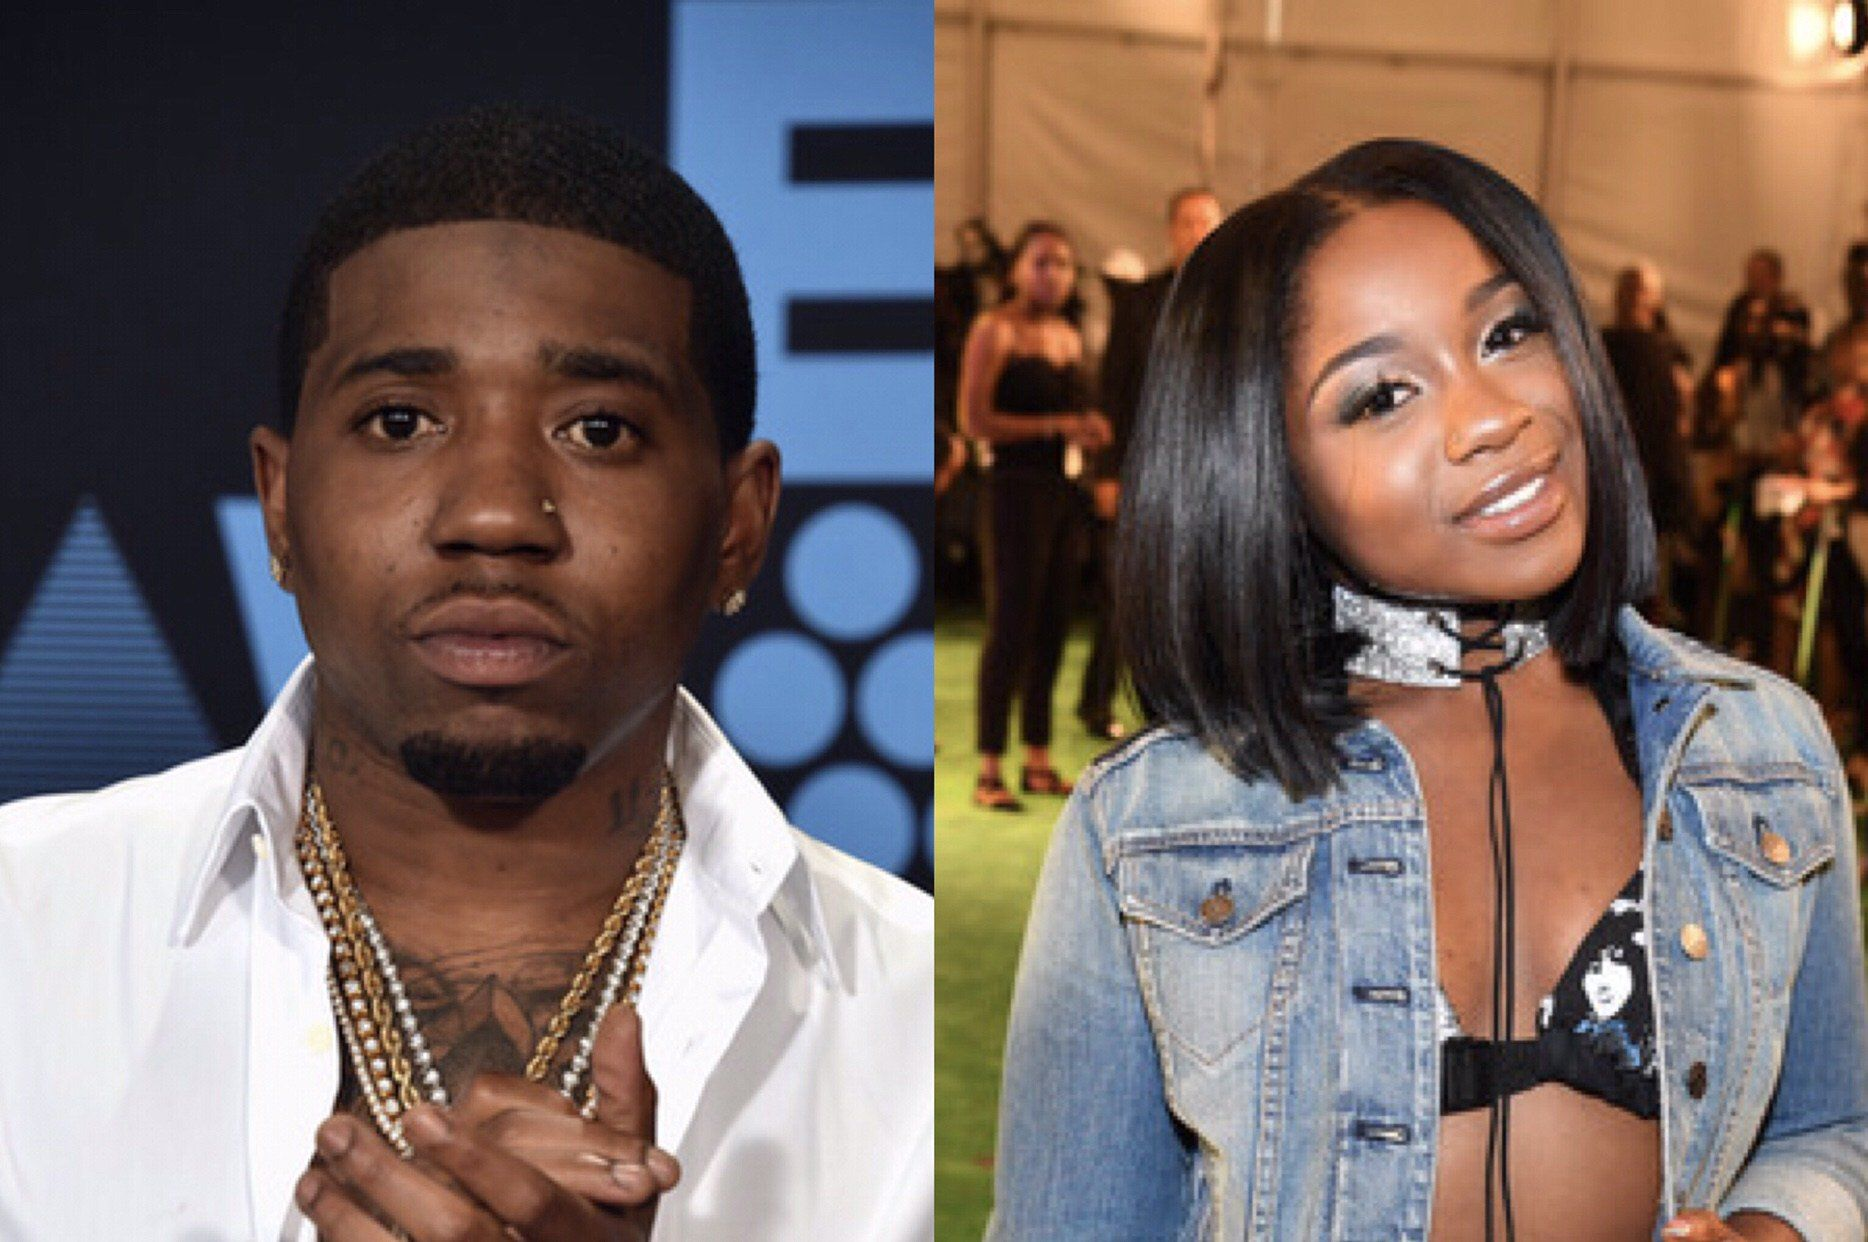 reginae-carter-is-back-together-with-her-boo-yfn-lucci-heres-the-video-of-them-hanging-out-some-fans-dont-believe-shes-happy-anymore